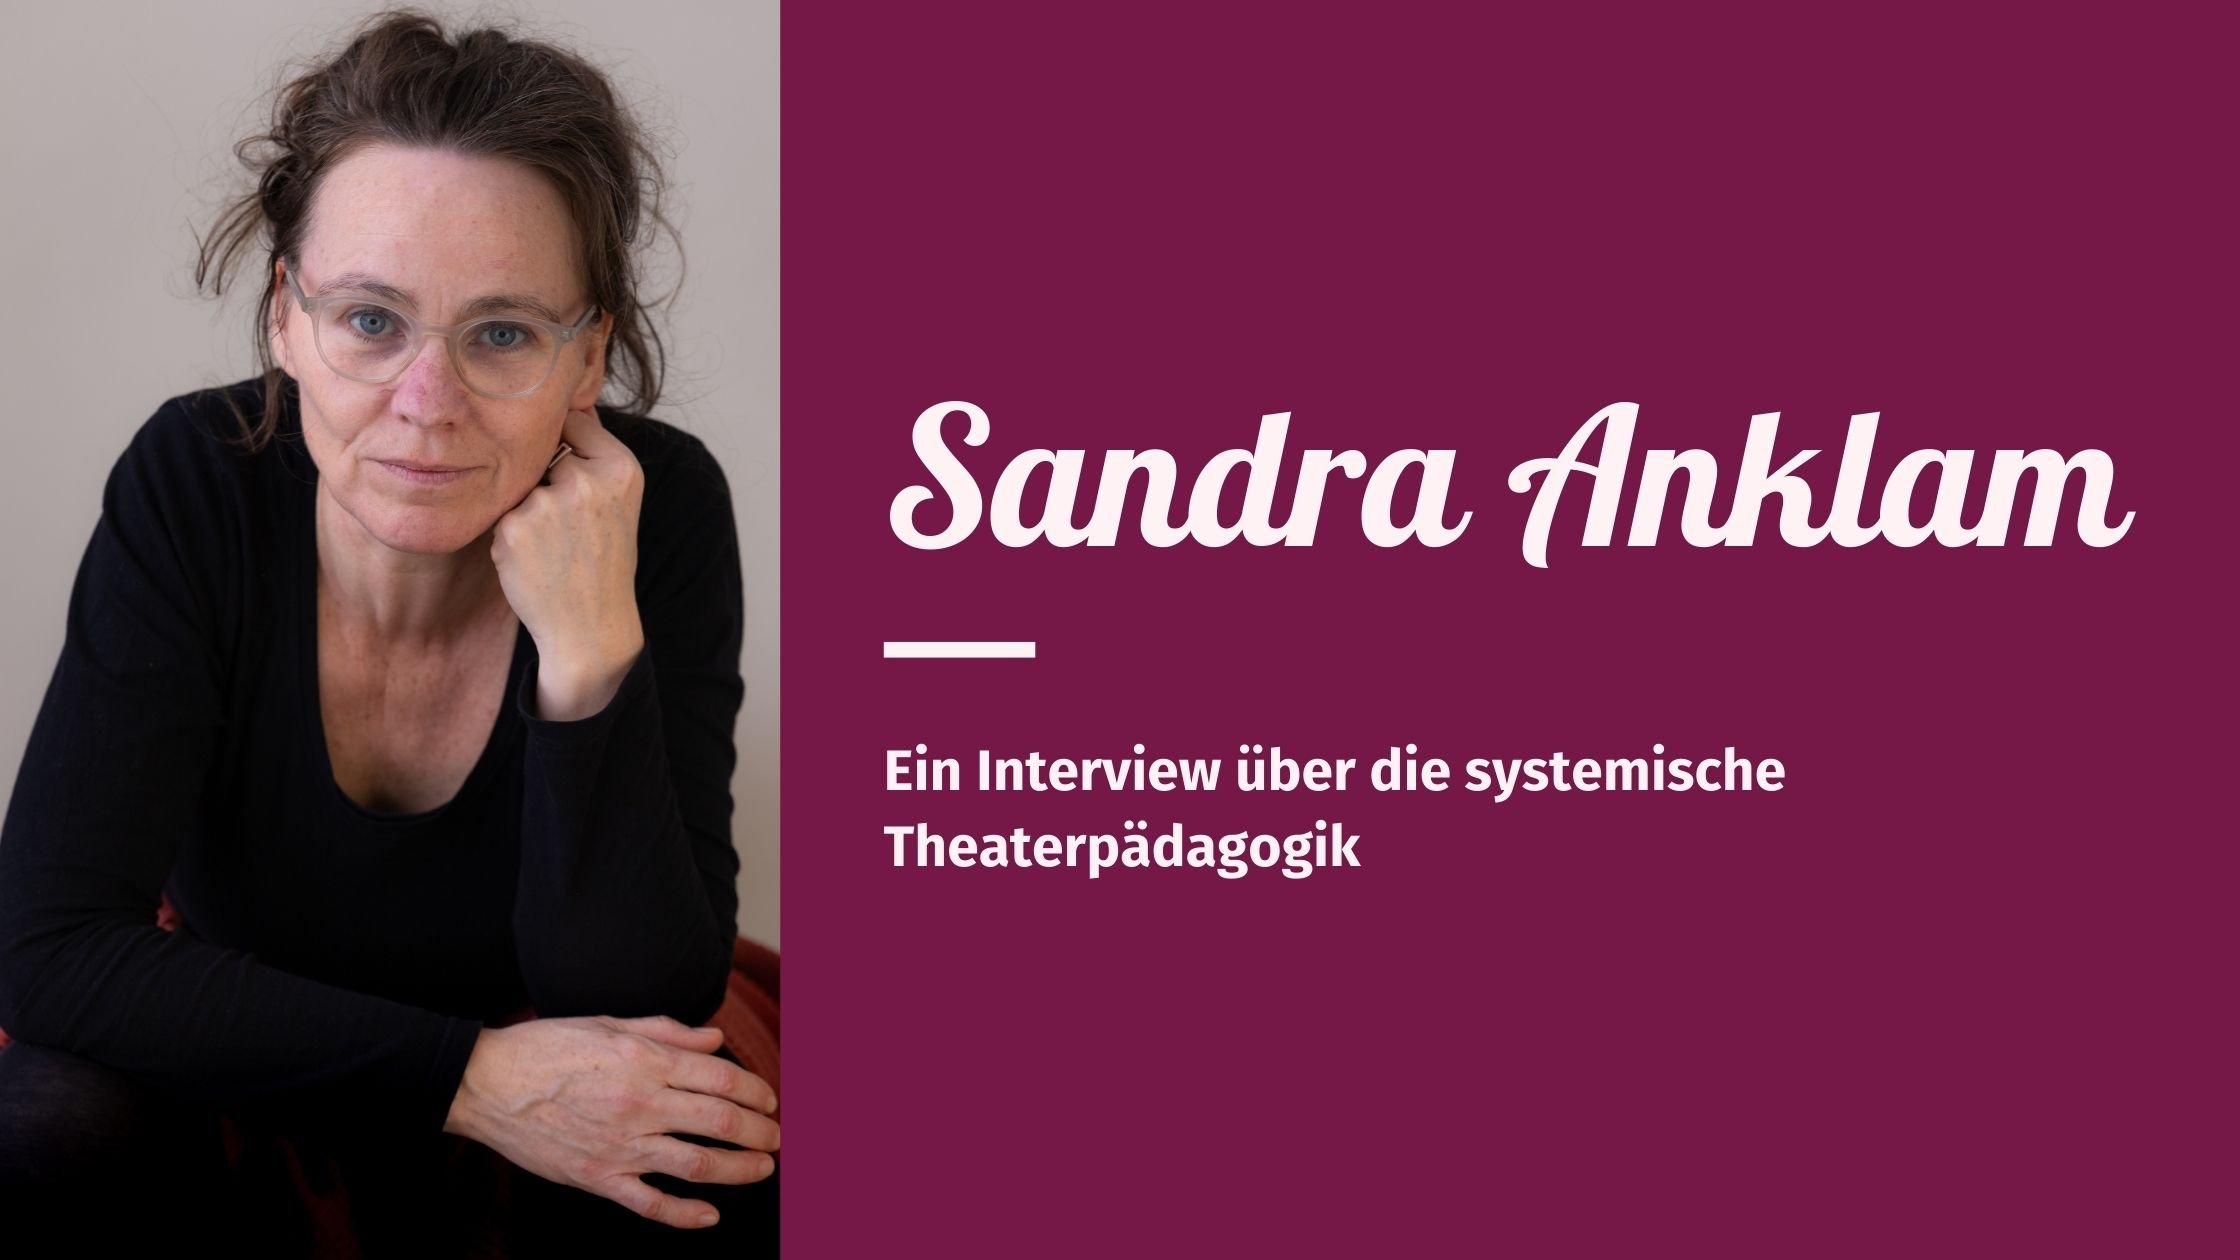 You are currently viewing Sandra Anklam